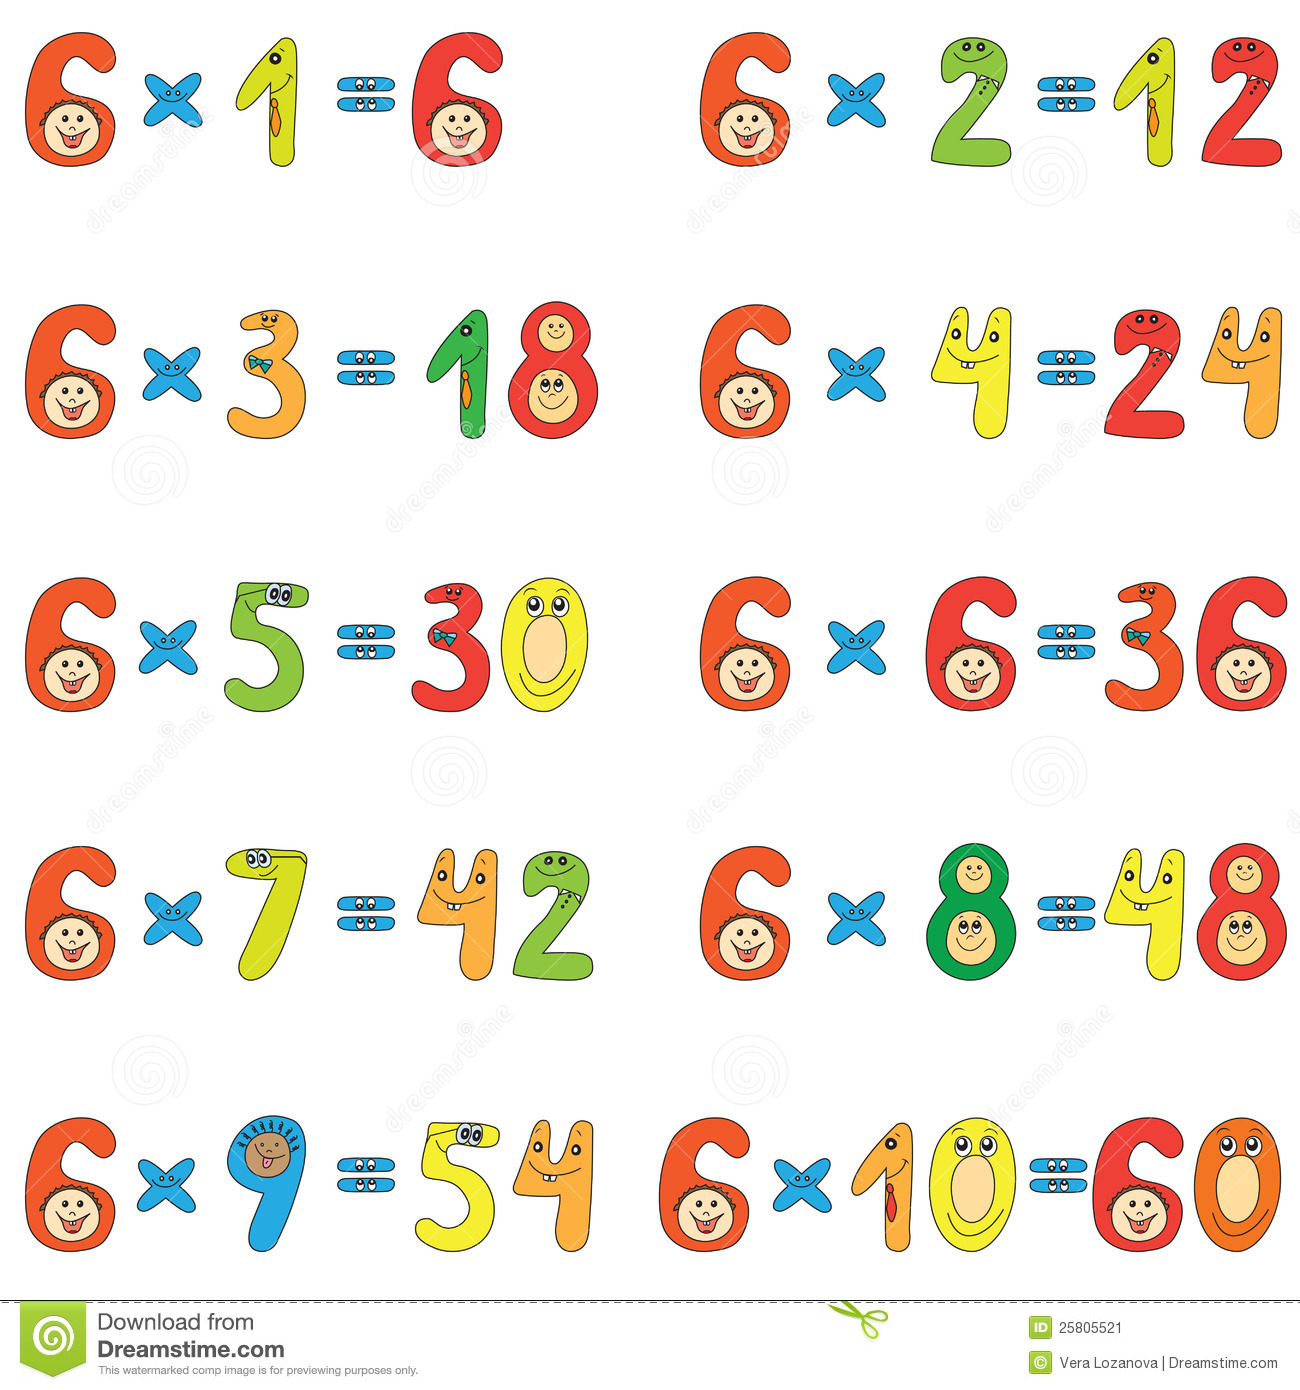 6 multiplication tables images periodic table images 6 multiplication tables gallery periodic table images 6 multiplication tables gallery periodic table images 6 multiplication gamestrikefo Images